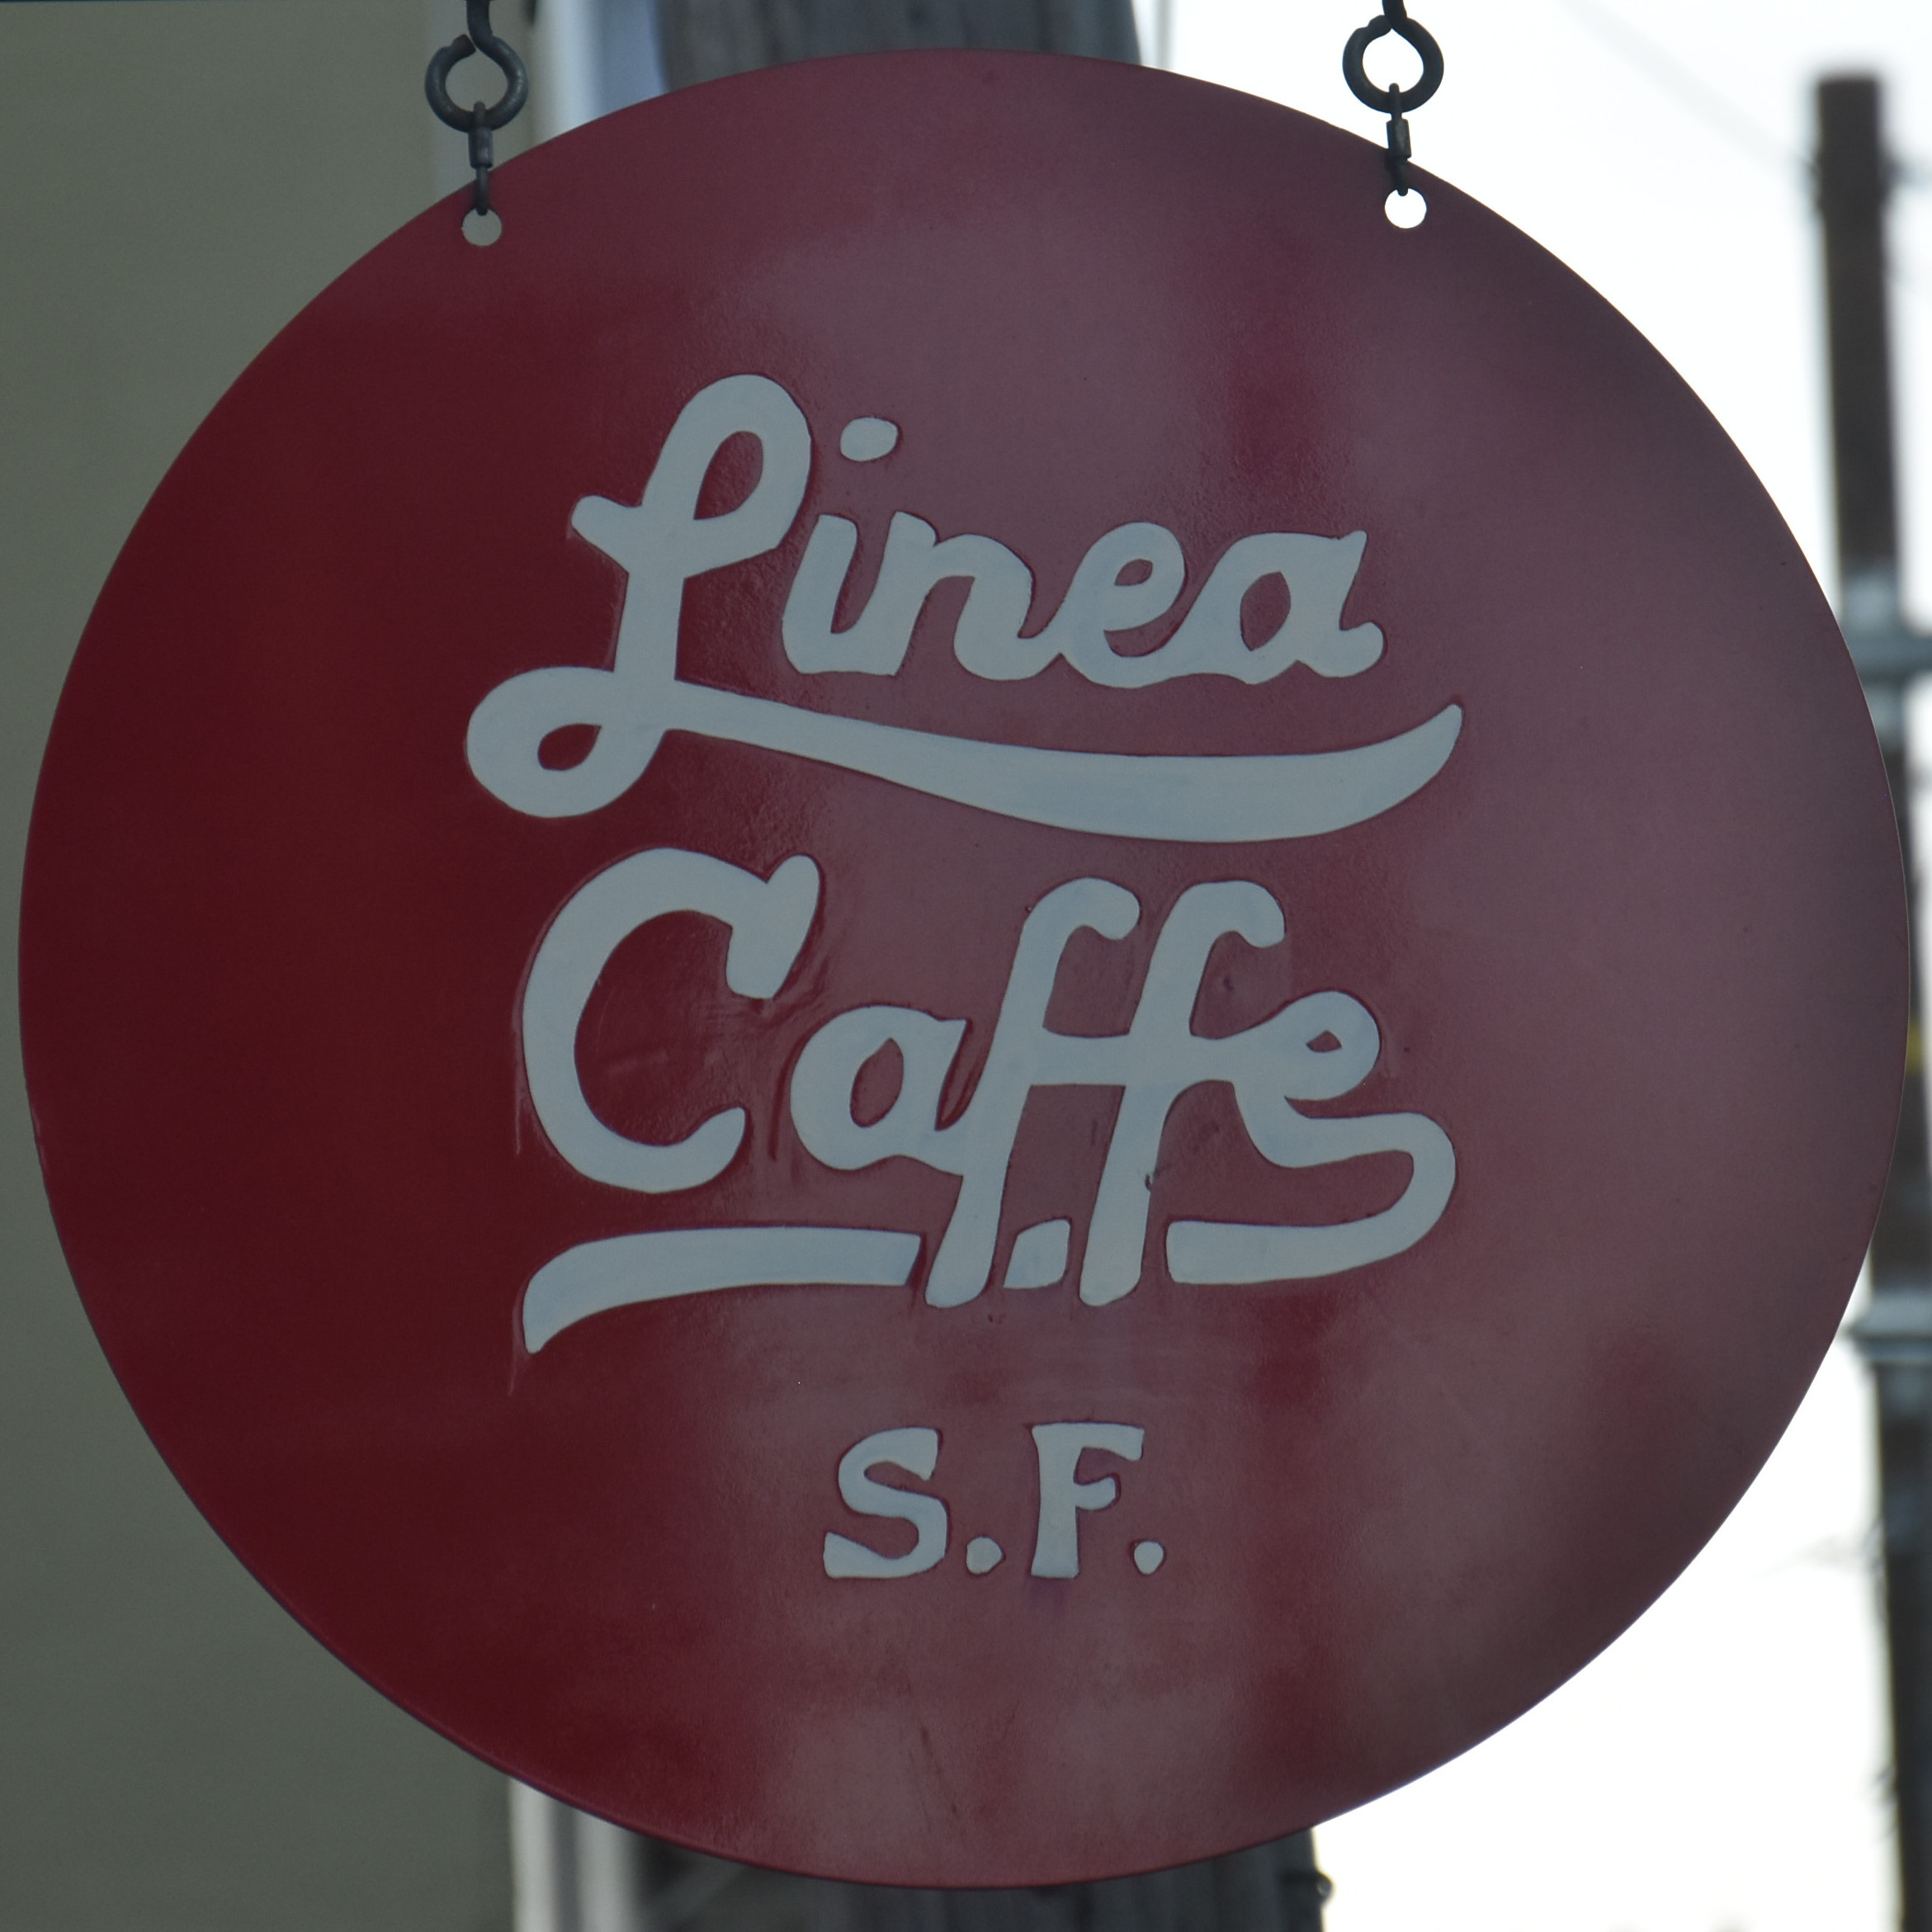 """The Linea Caffe sign, from my visit in April 2019, with the words """"Linea Caffe S.F"""" written in white in a cursive script on a red, circular background."""